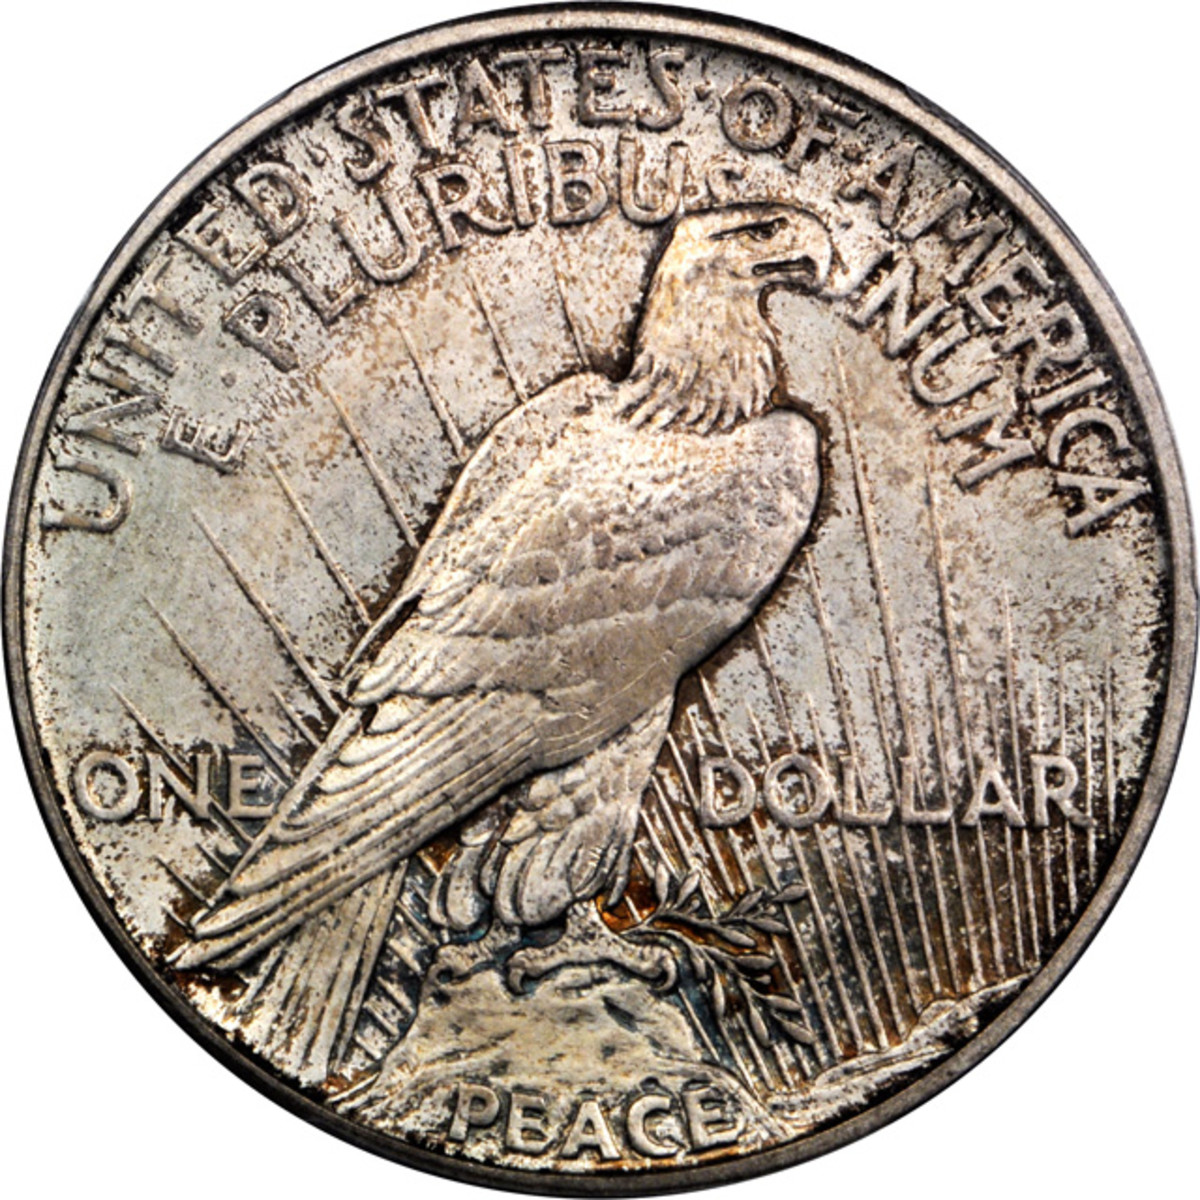 Lot 13168. 1922 Peace Silver Dollar. Modified High Relief Production Trial. Judd-2020. PCGS MS-65. Ex: Raymond T. Baker Estate.